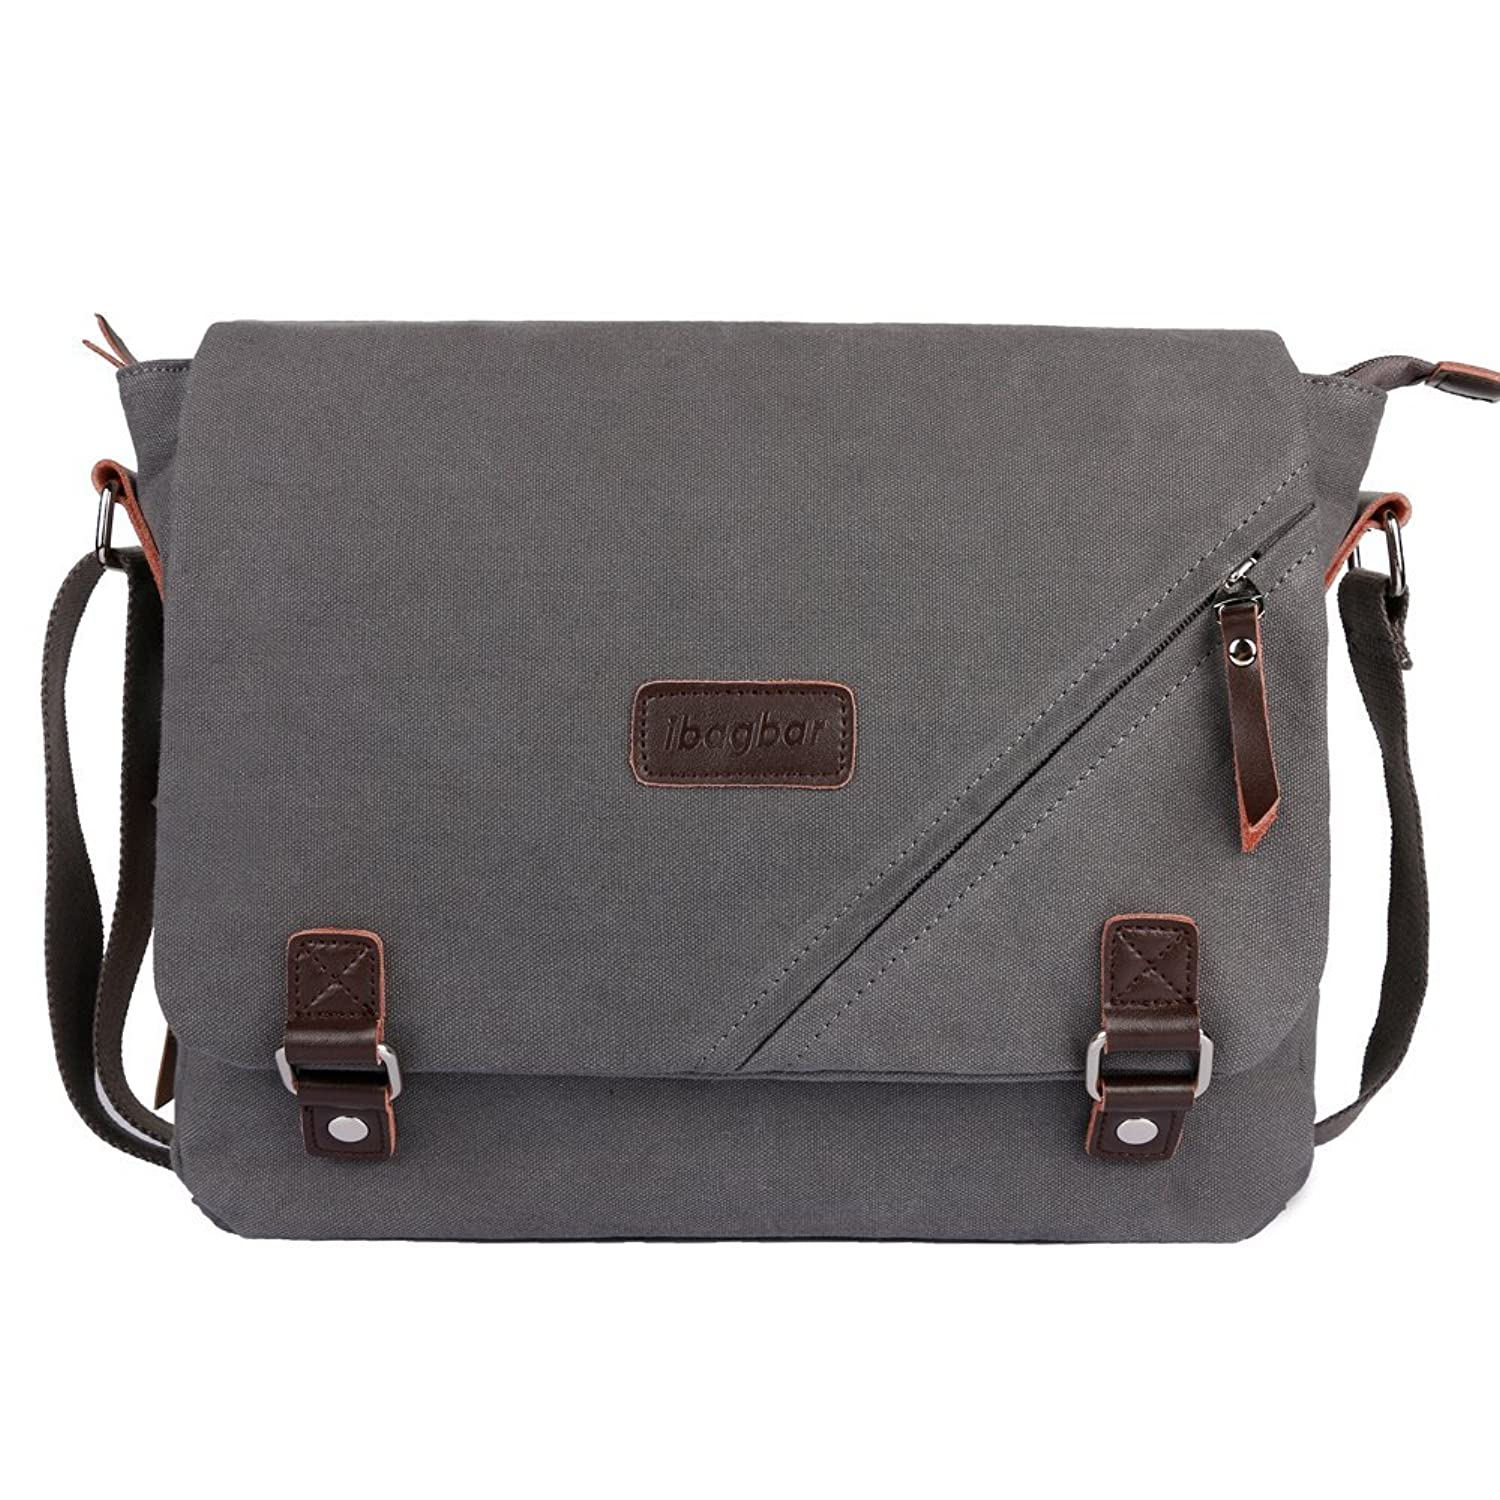 Top 10 Best Laptop Tablet Bags for Women Reviews - Best Ratings ...